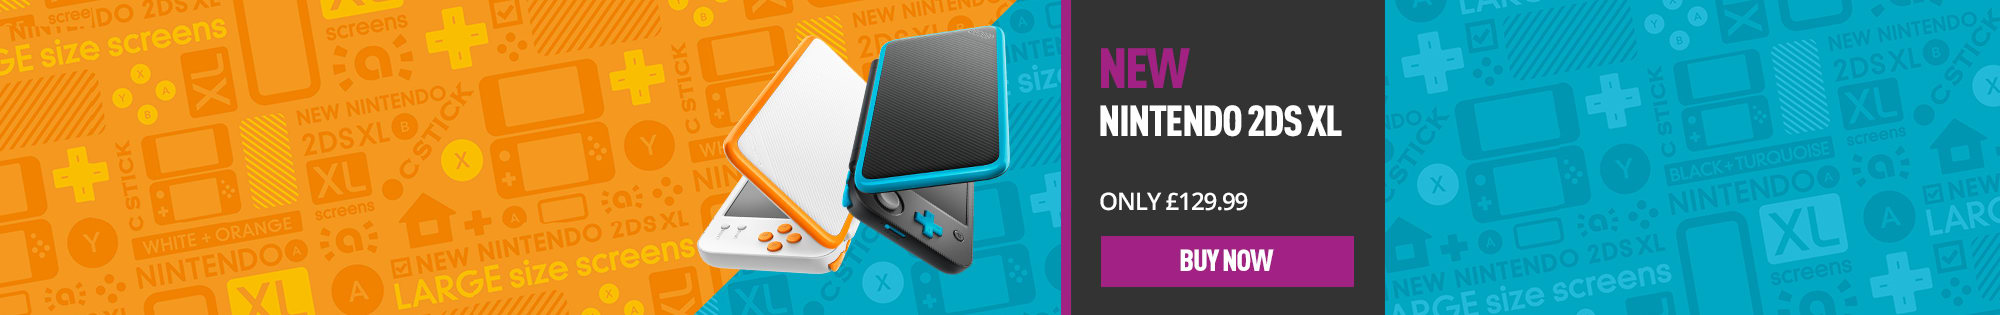 New Nintendo 2DS - Homepage banner